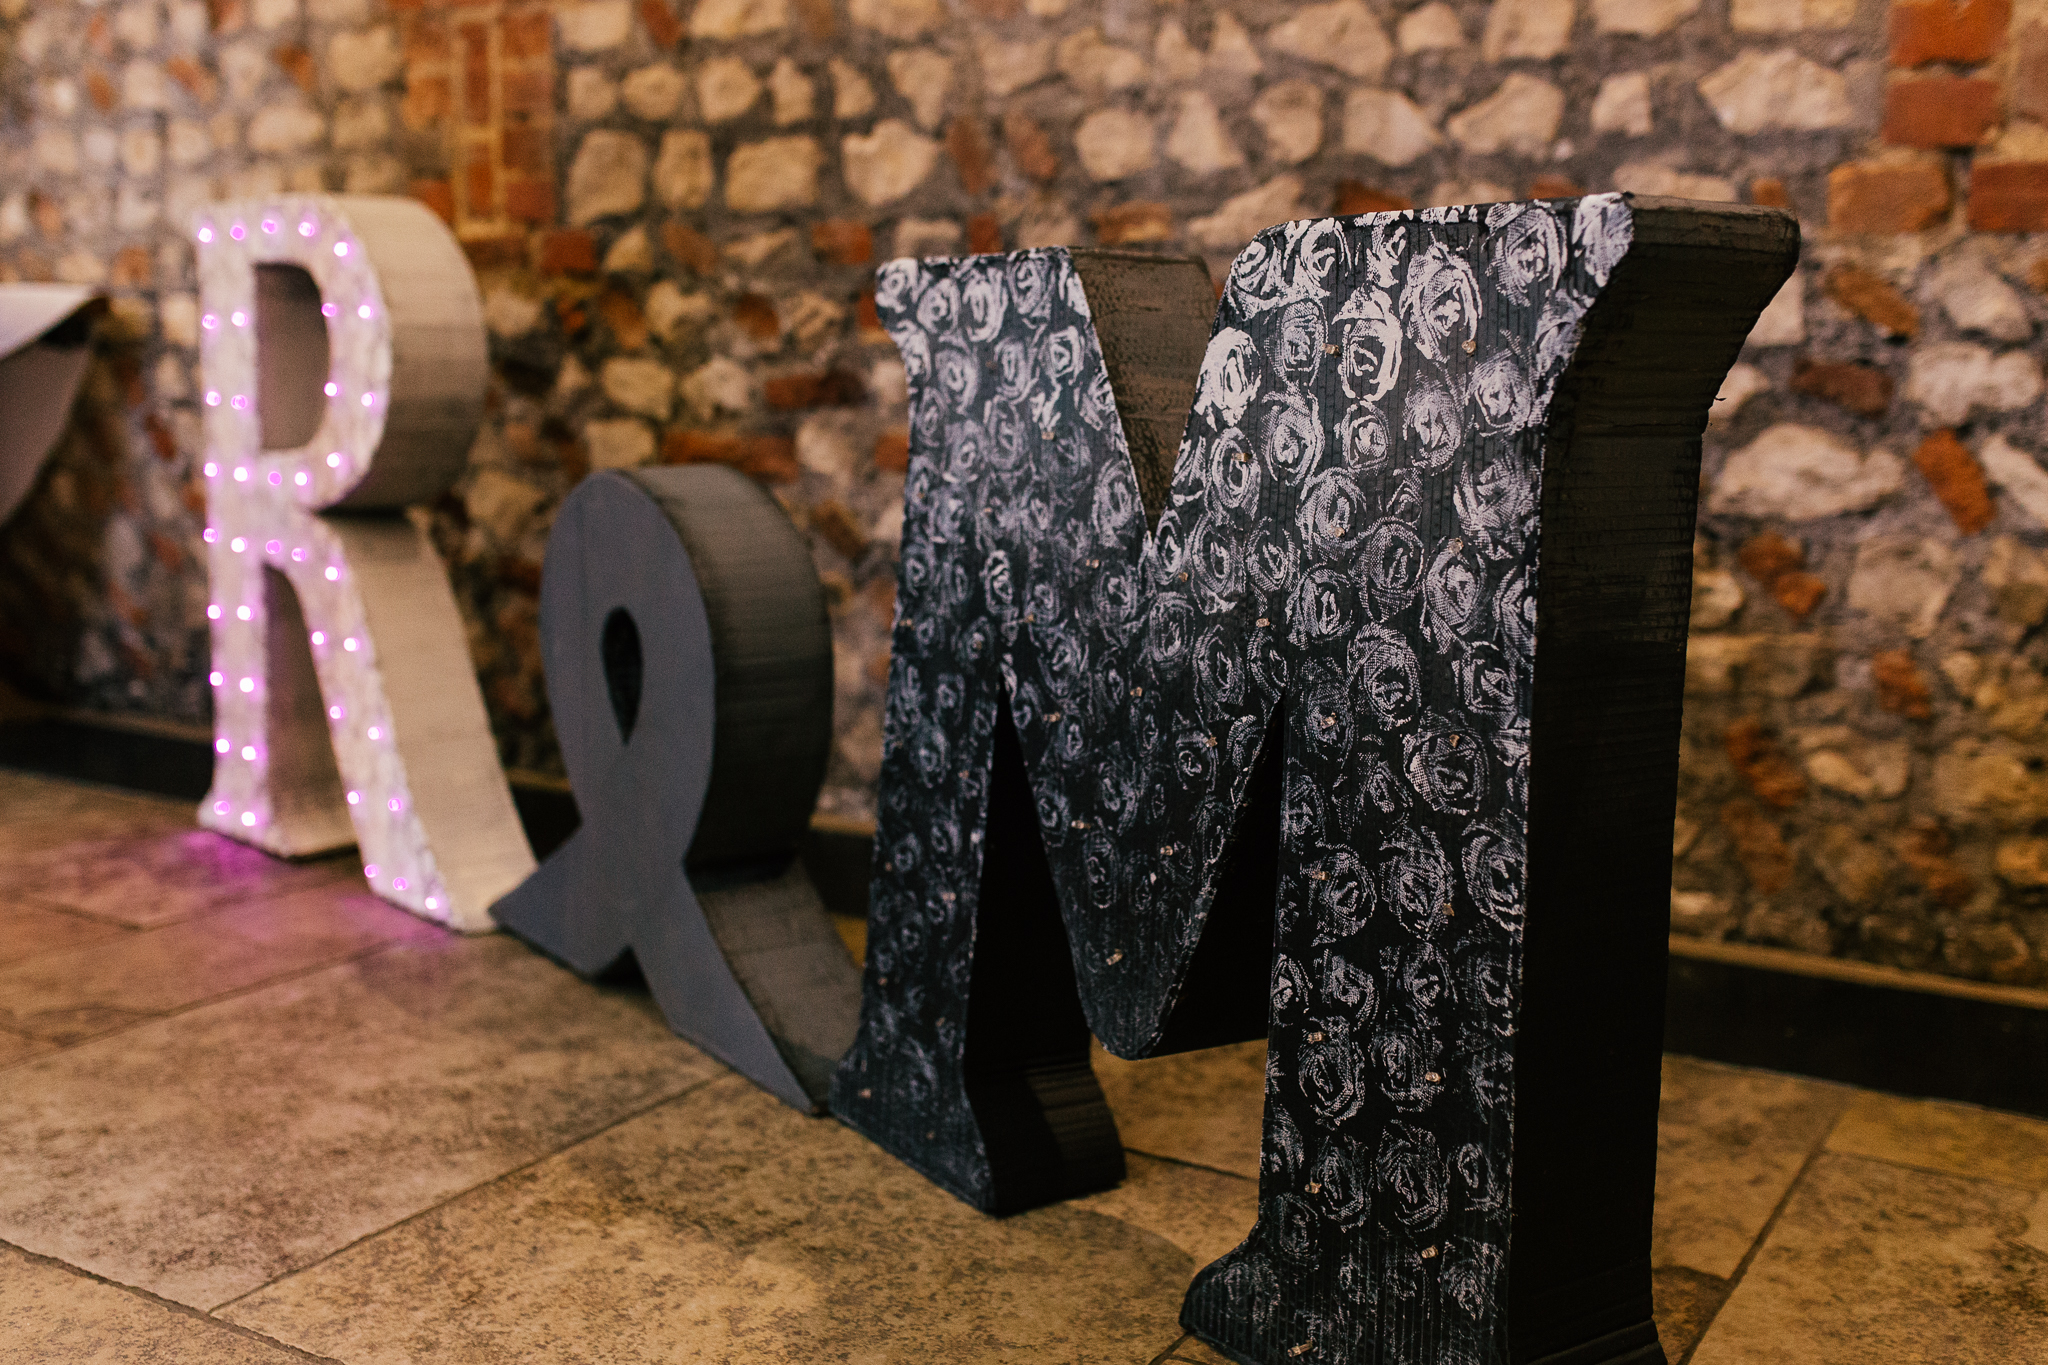 Farbridge Barn Wedding Creative Alternative Photo Chichester Joanna Nicole Photography (75 of 133).jpg